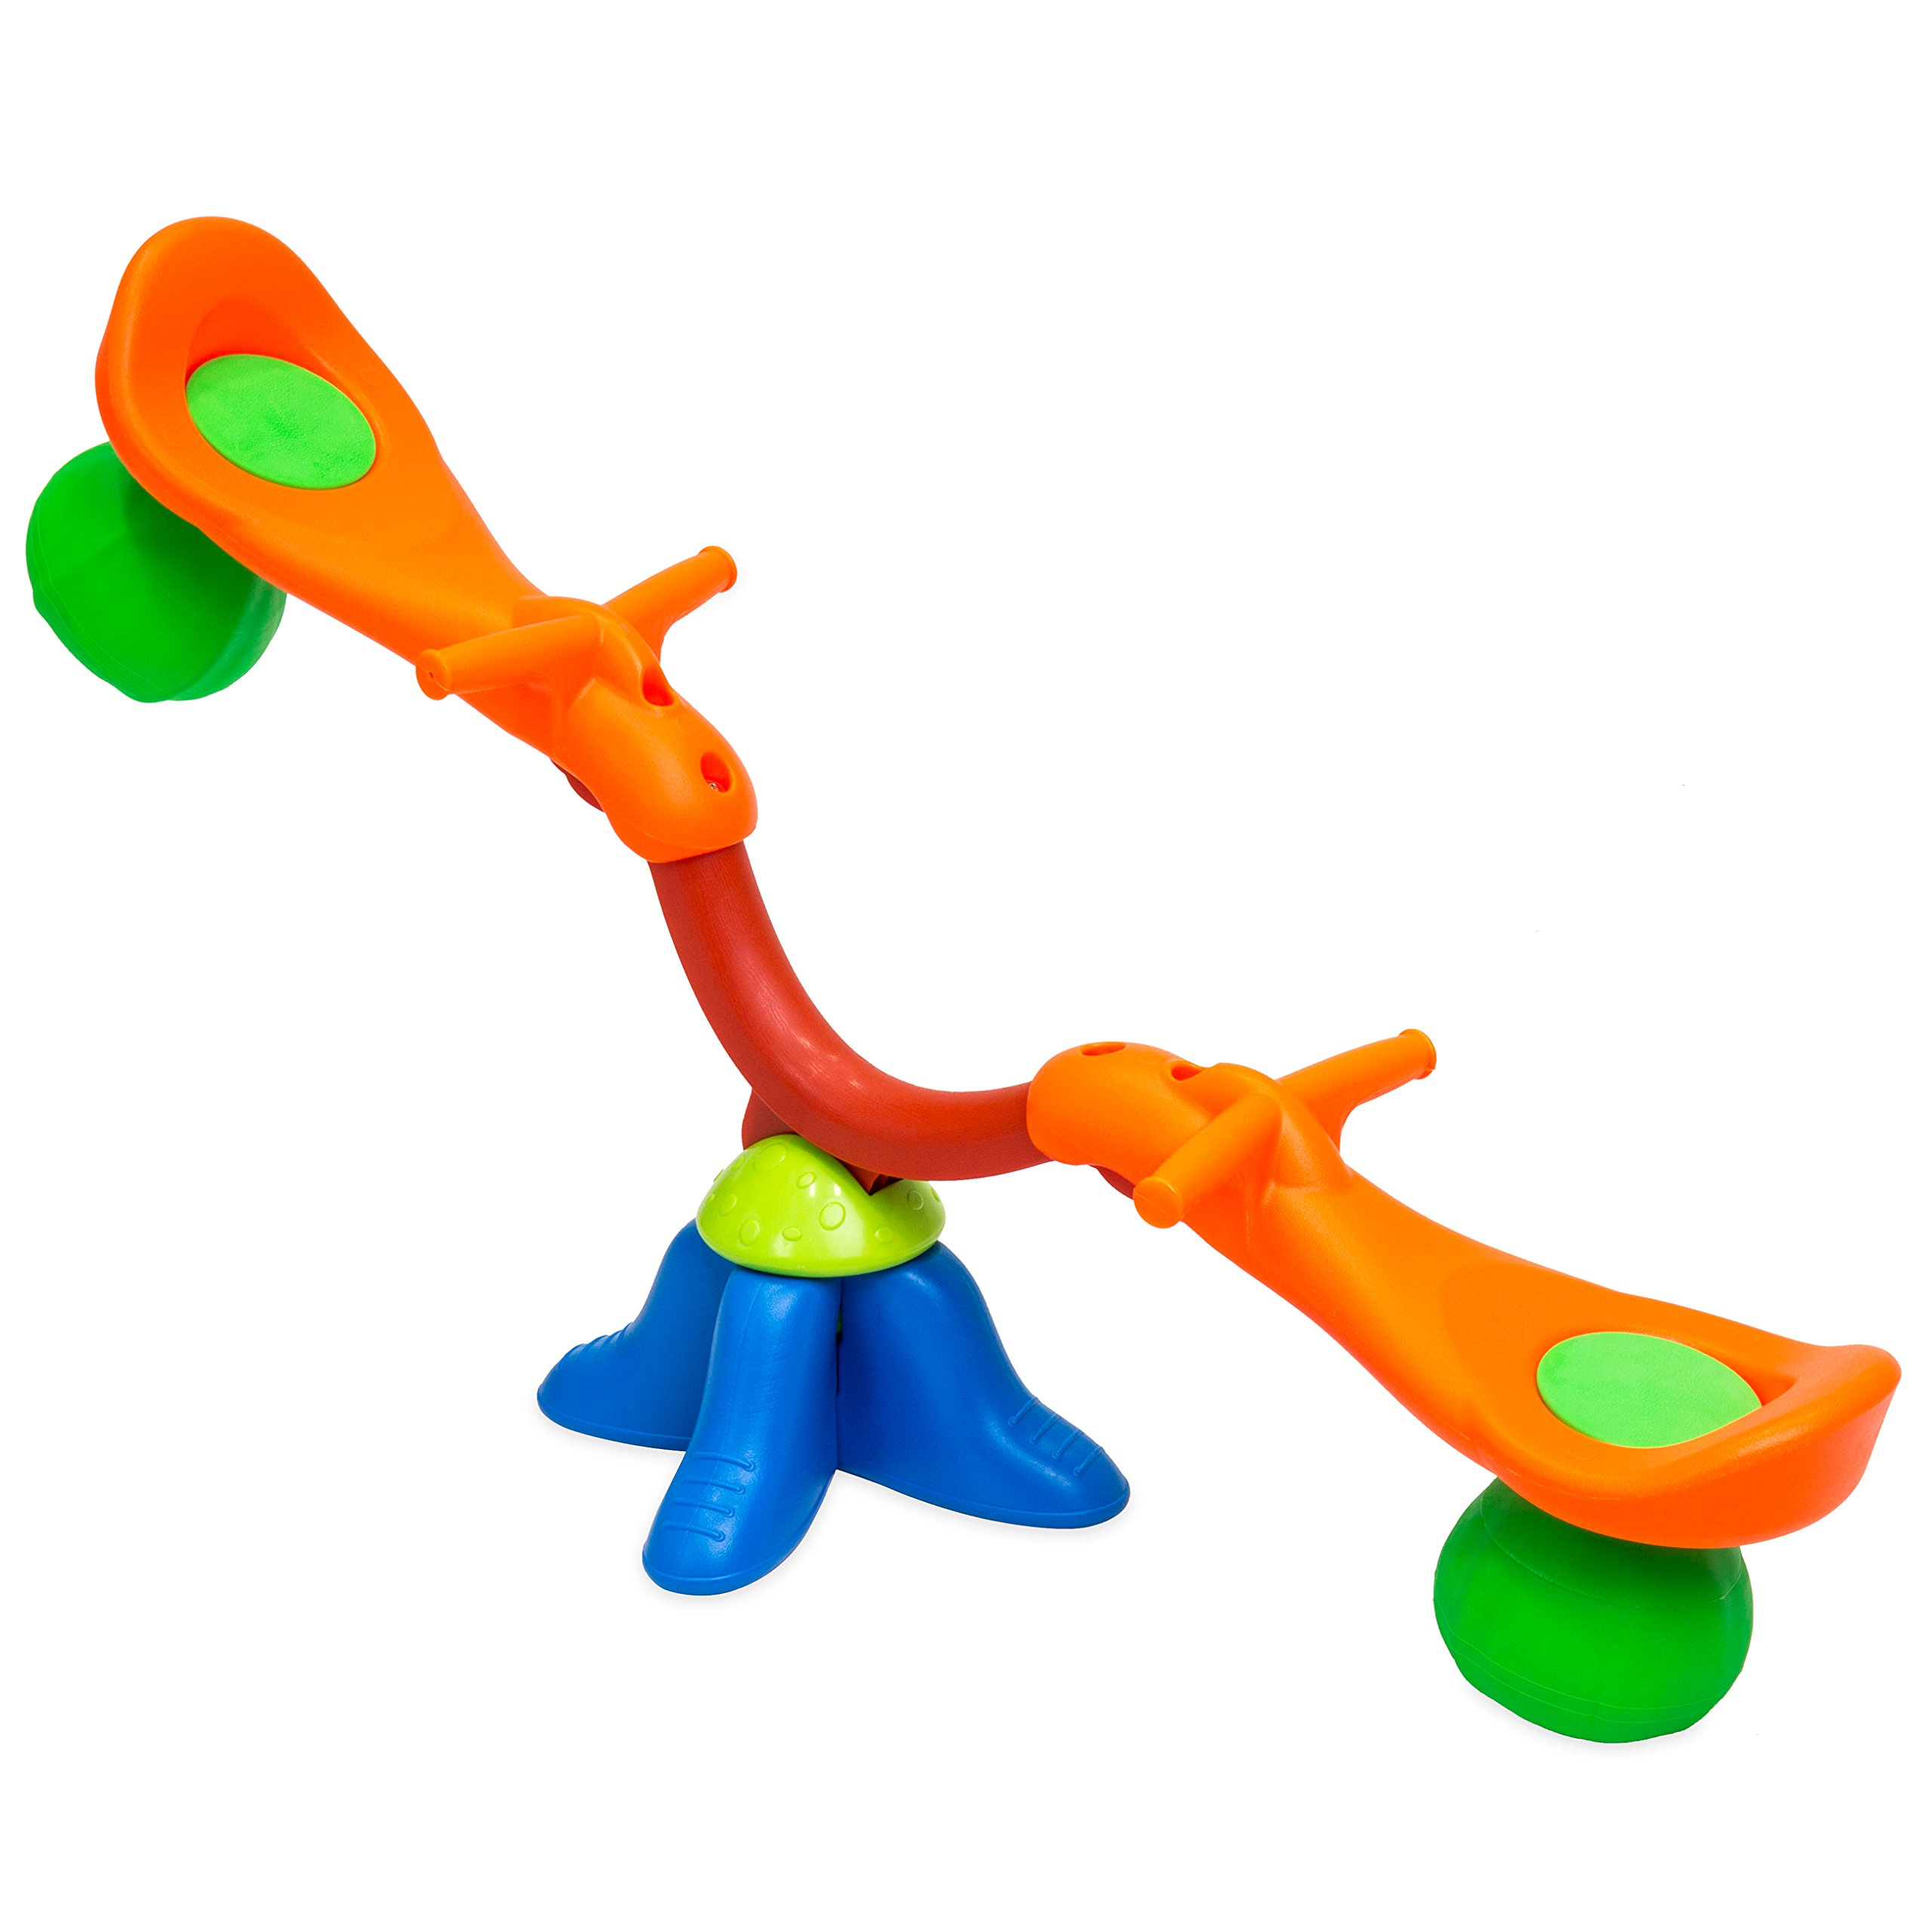 Best Choice Products Kids Toddler 360 Degree Swivel Seesaw Bouncer Teeter Totter (Multicolor)